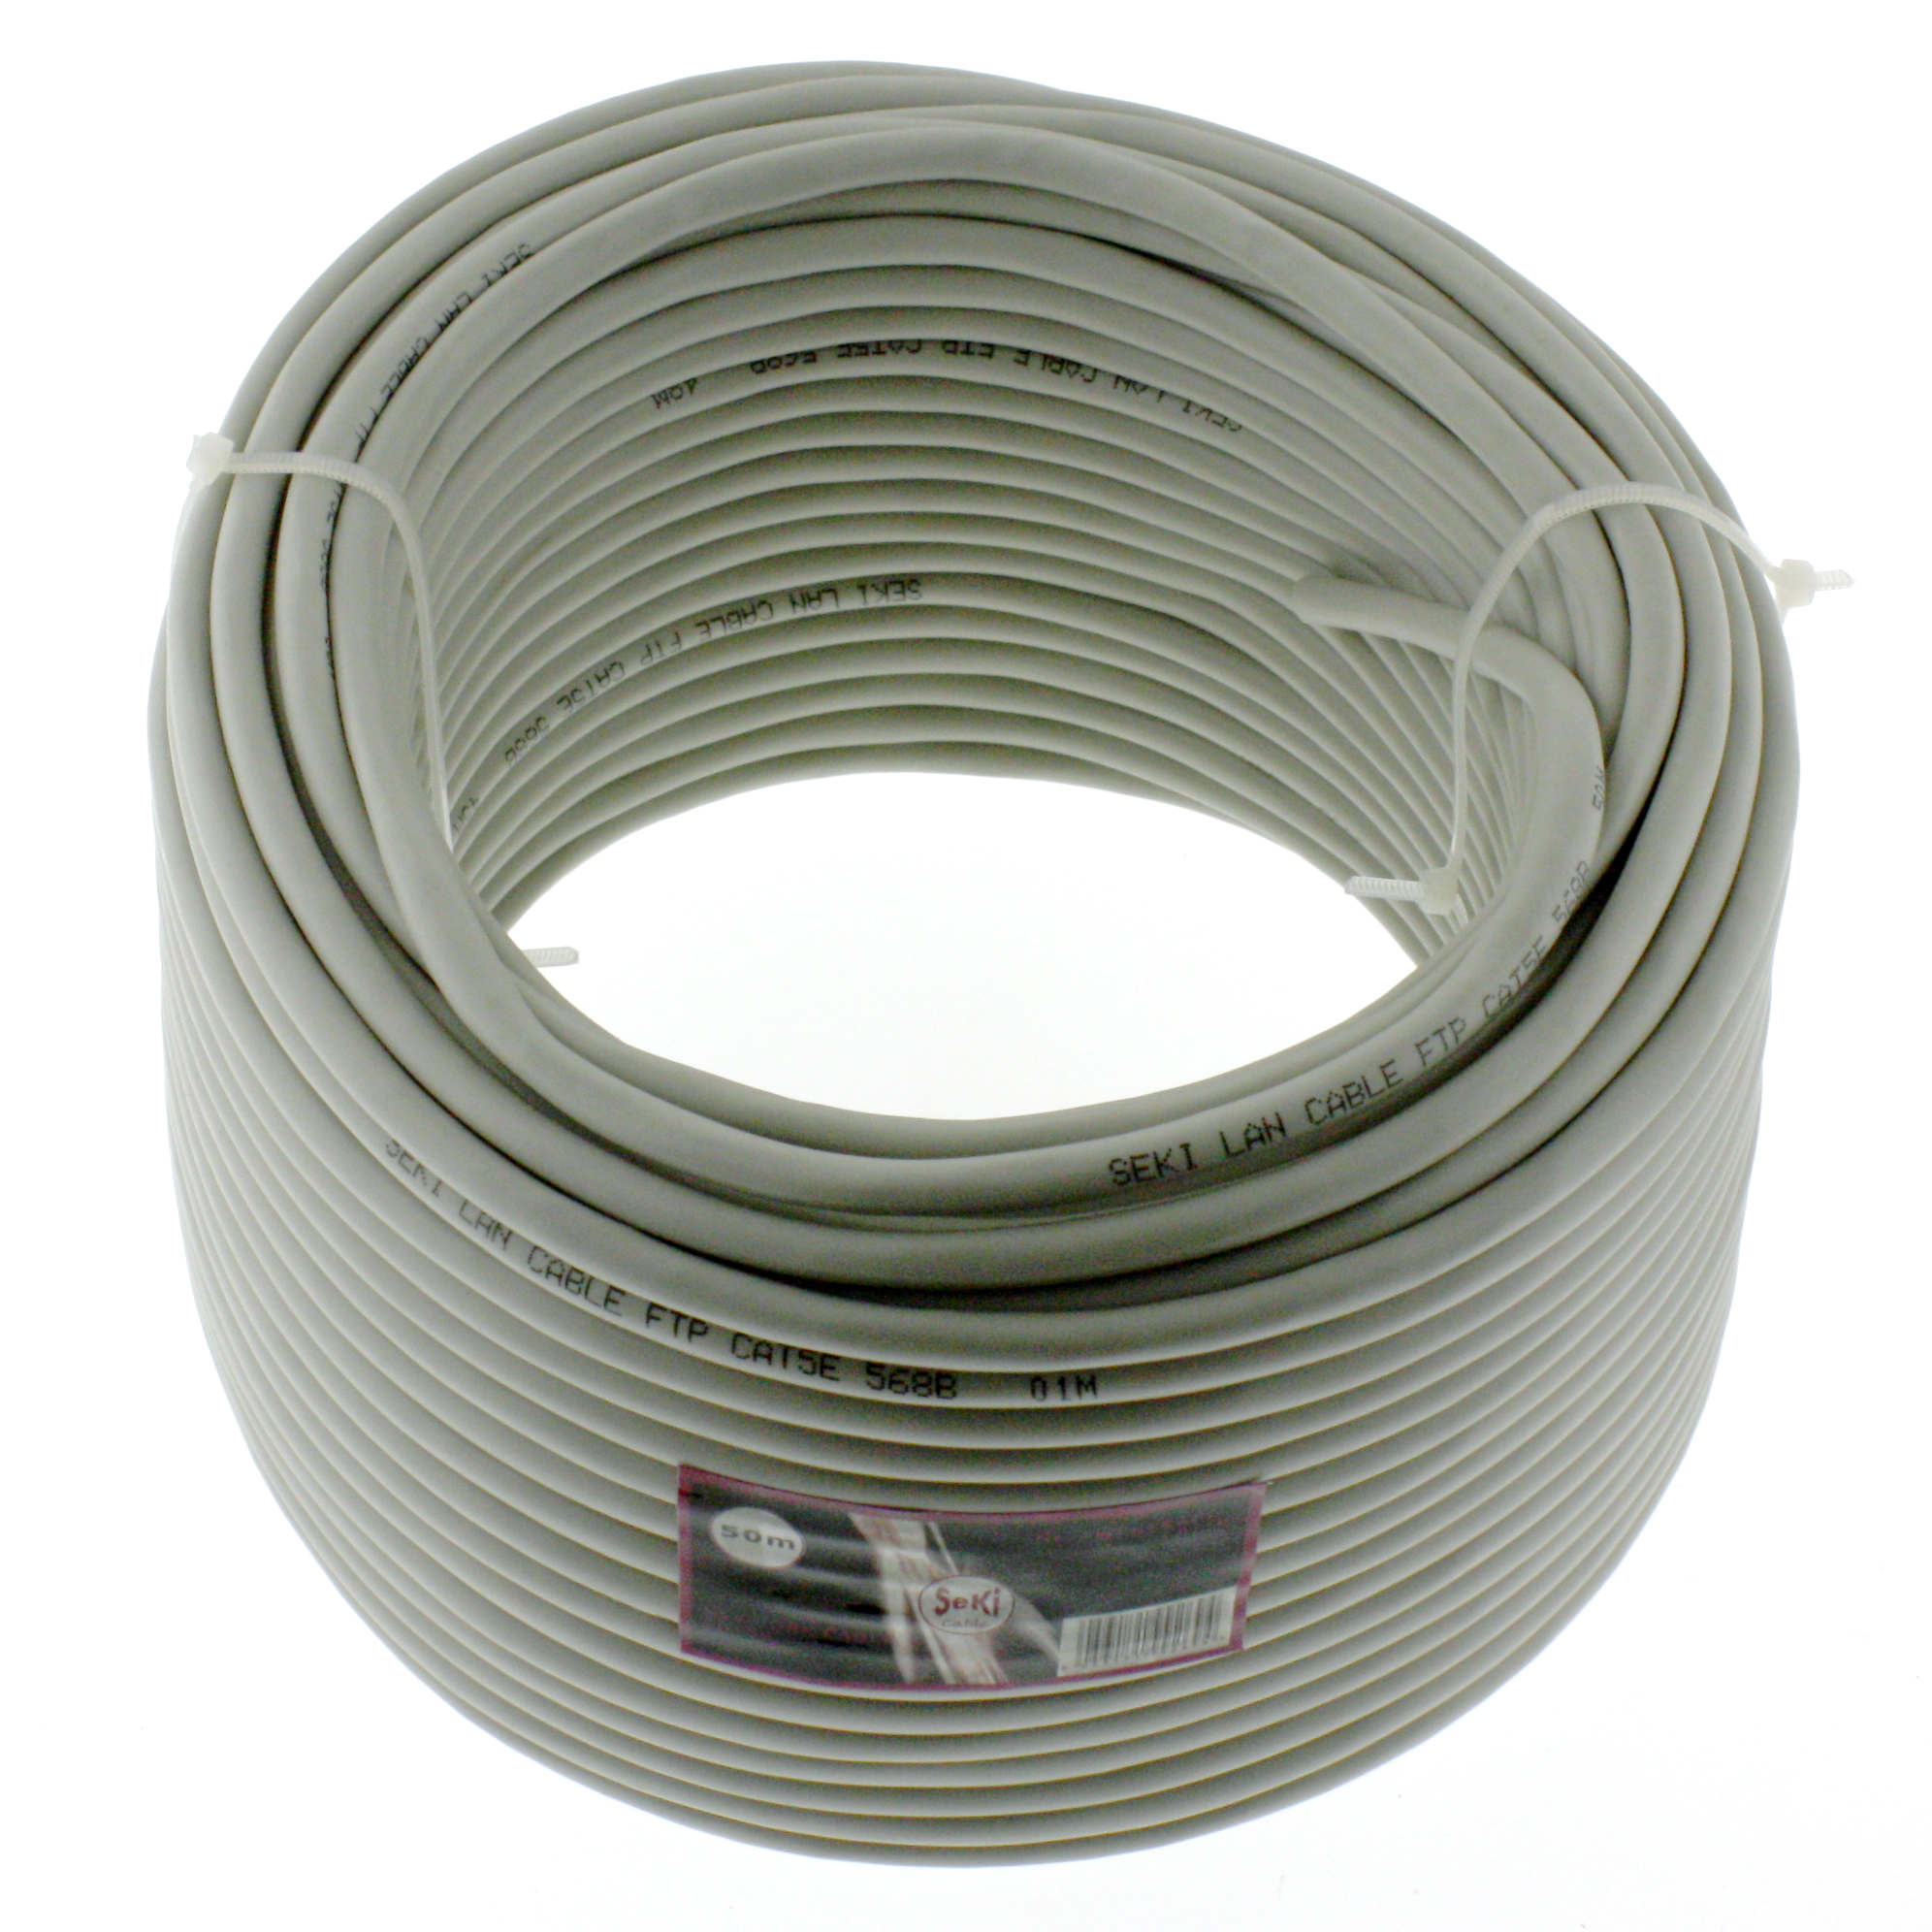 Network cable Cat. 5e, 50m